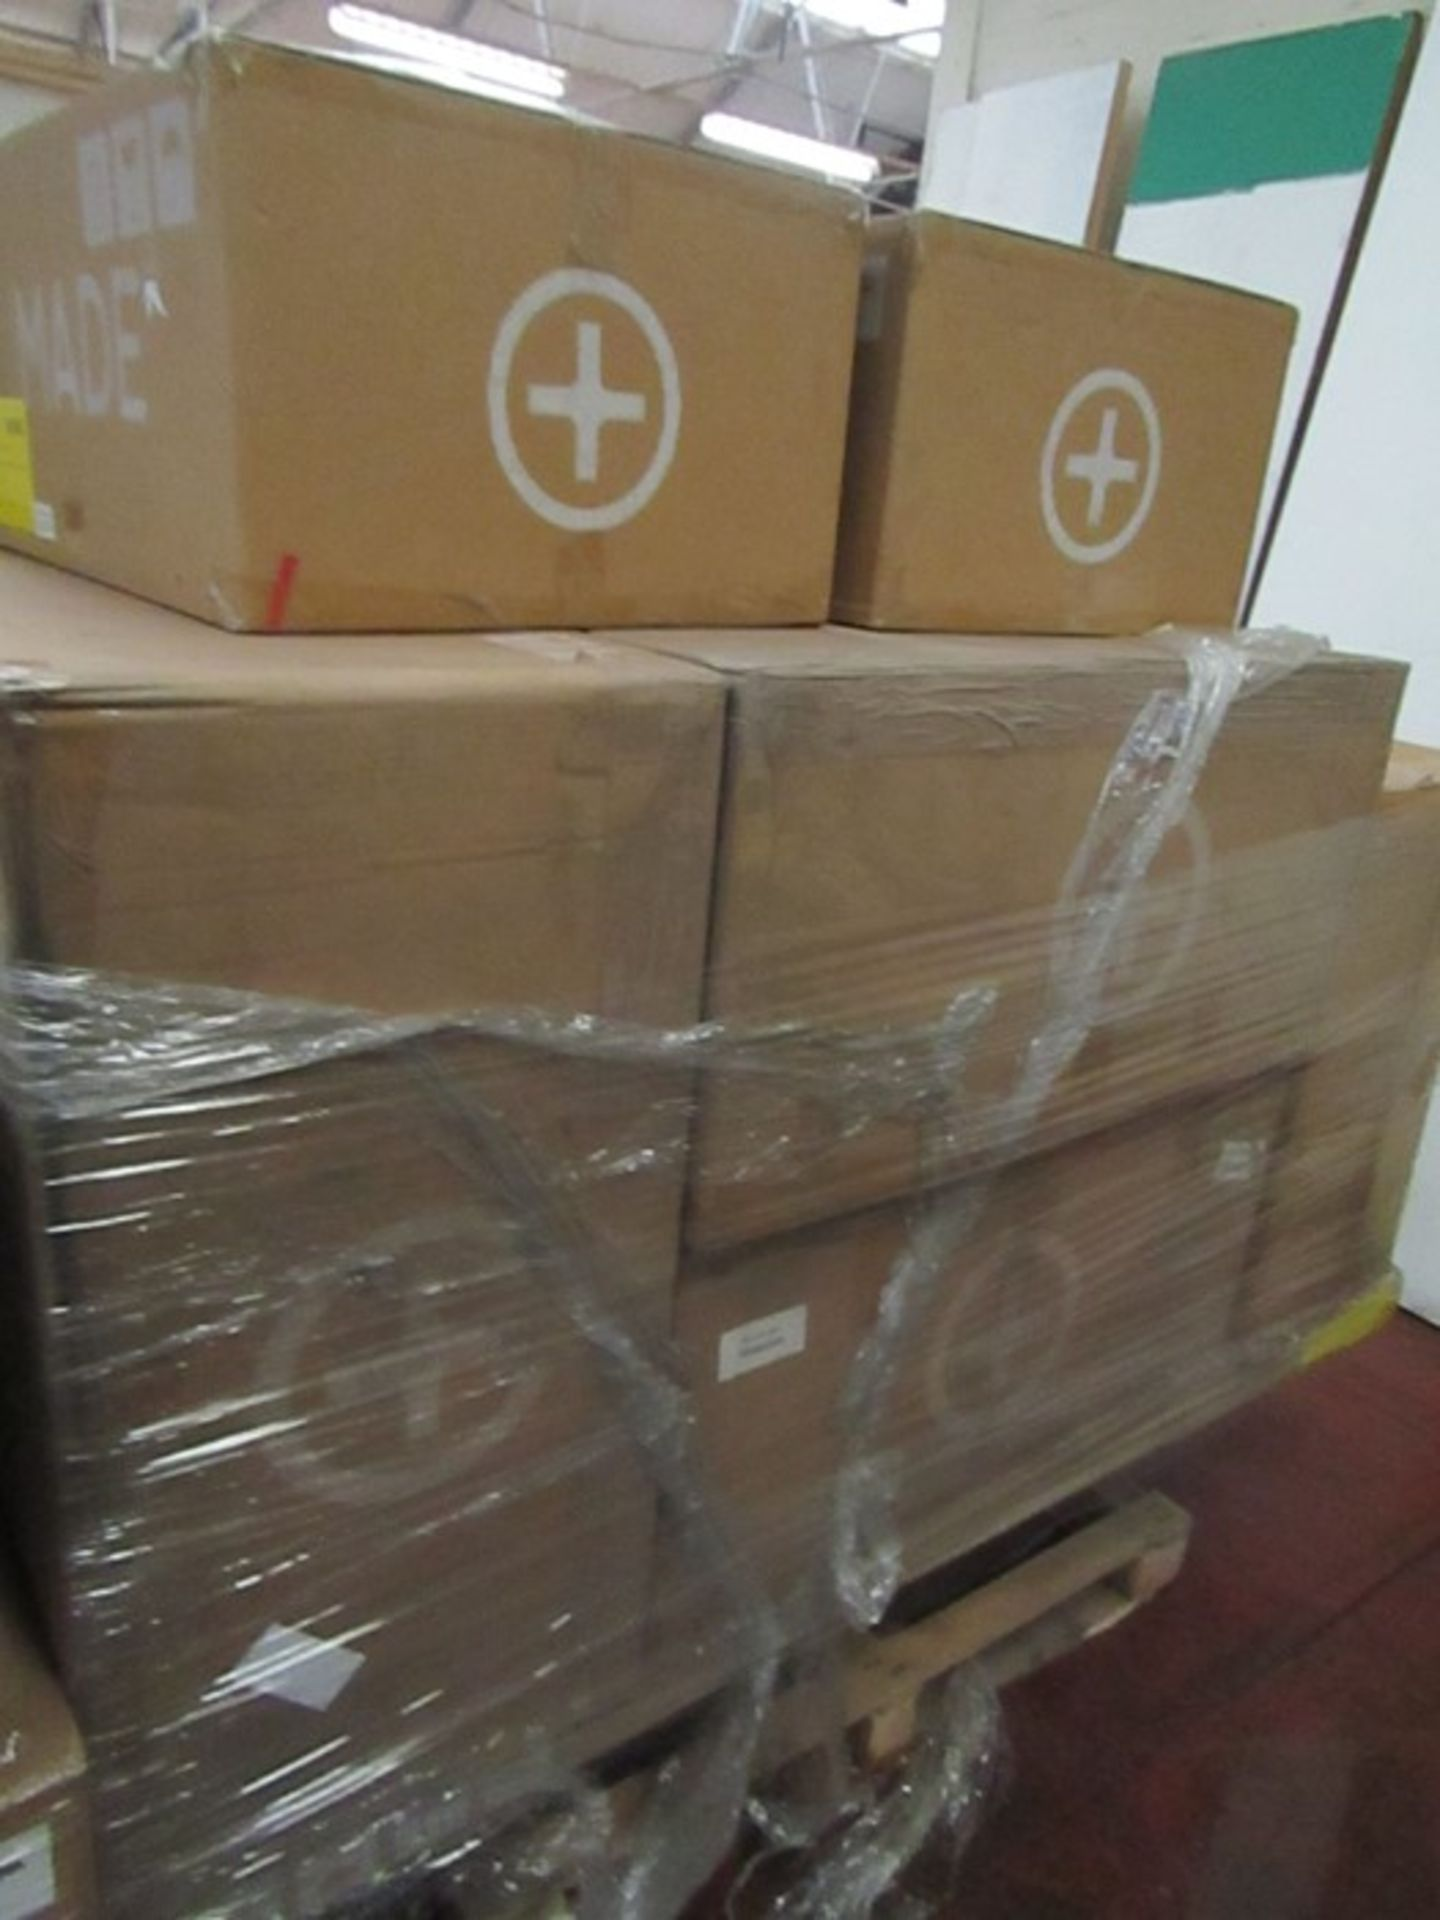   16x   PALLETS OF MADE.COM UNMANIFESTED SOFA PARTS, THESE ARE FROM VARIOUS SOFAS AND DONT APPEAR TO - Image 12 of 34